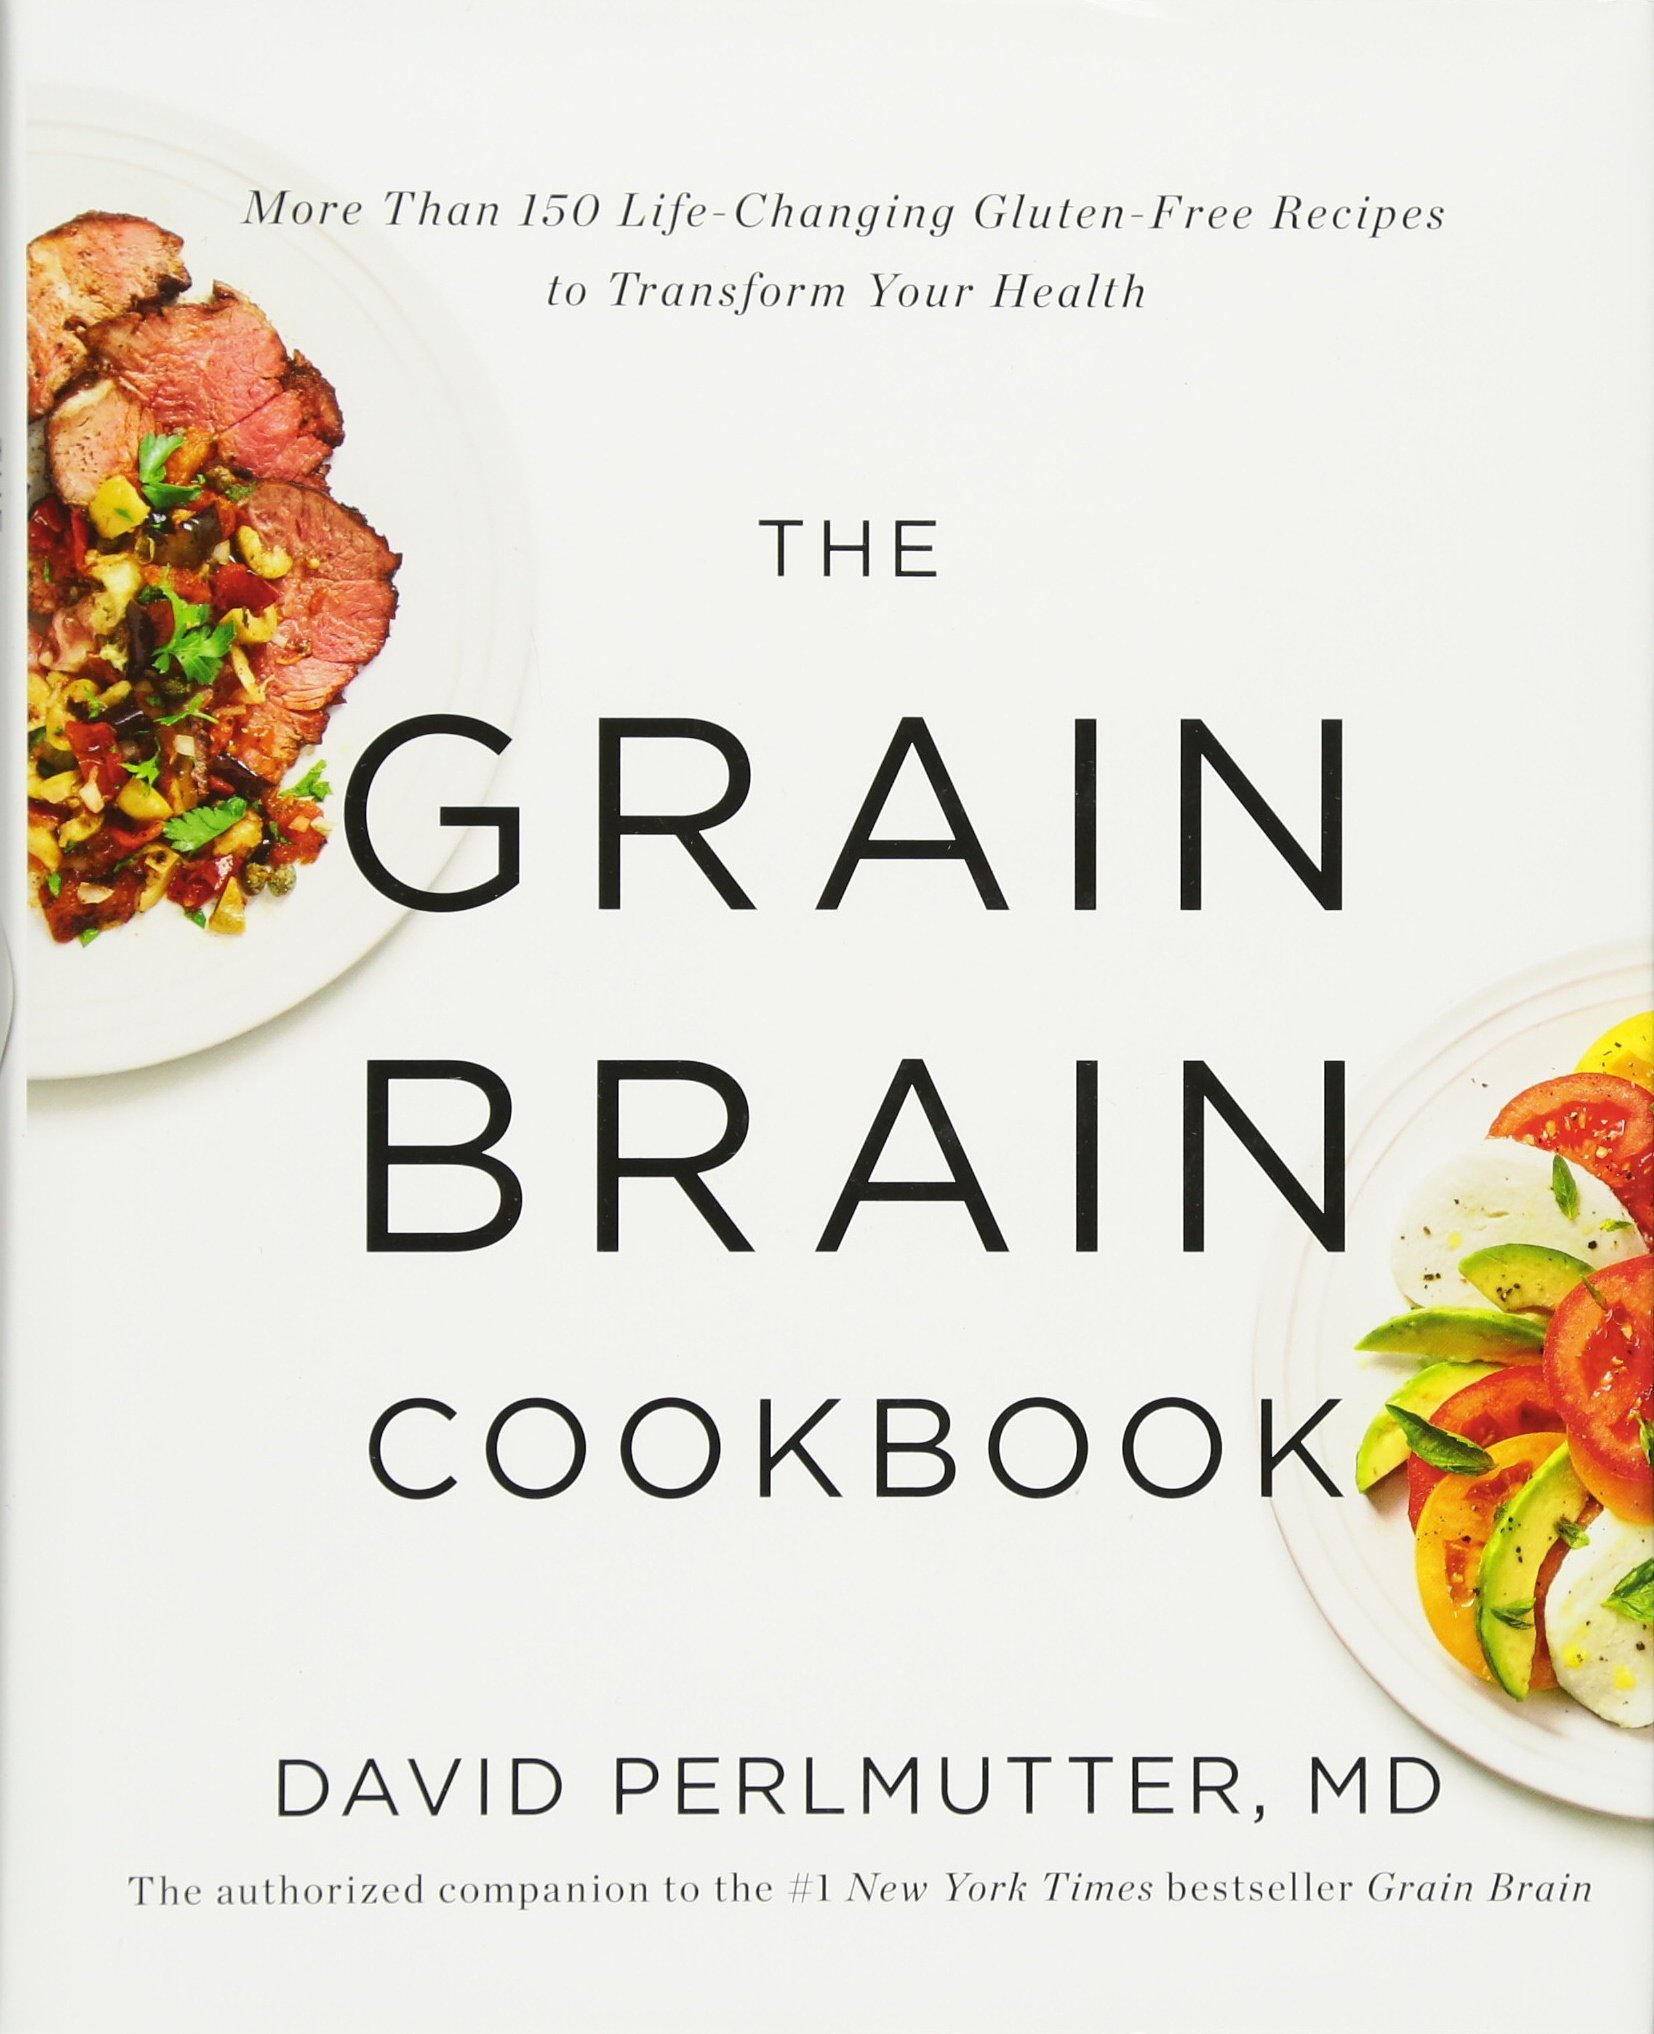 The Grain Brain Cookbook: More Than 150 Life-Changing Gluten-Free Recipes to Transform Your Health by Little Brown and Company